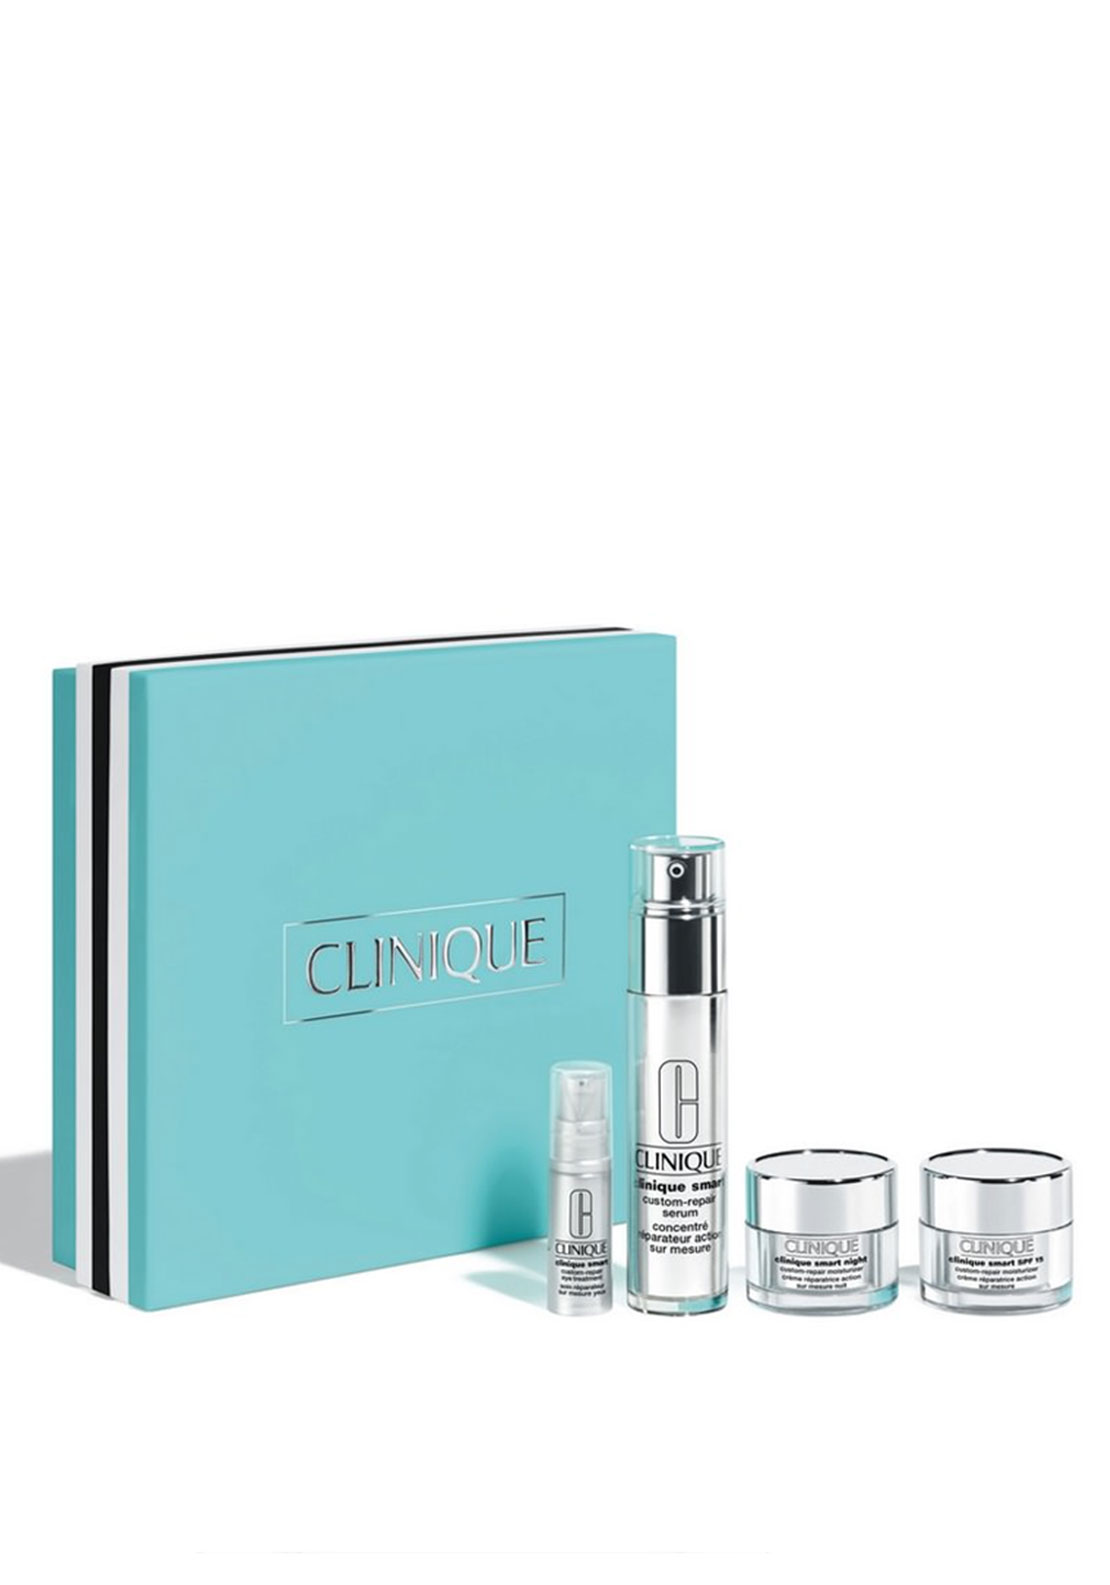 Clinique All Smarts Skincare Gift Set